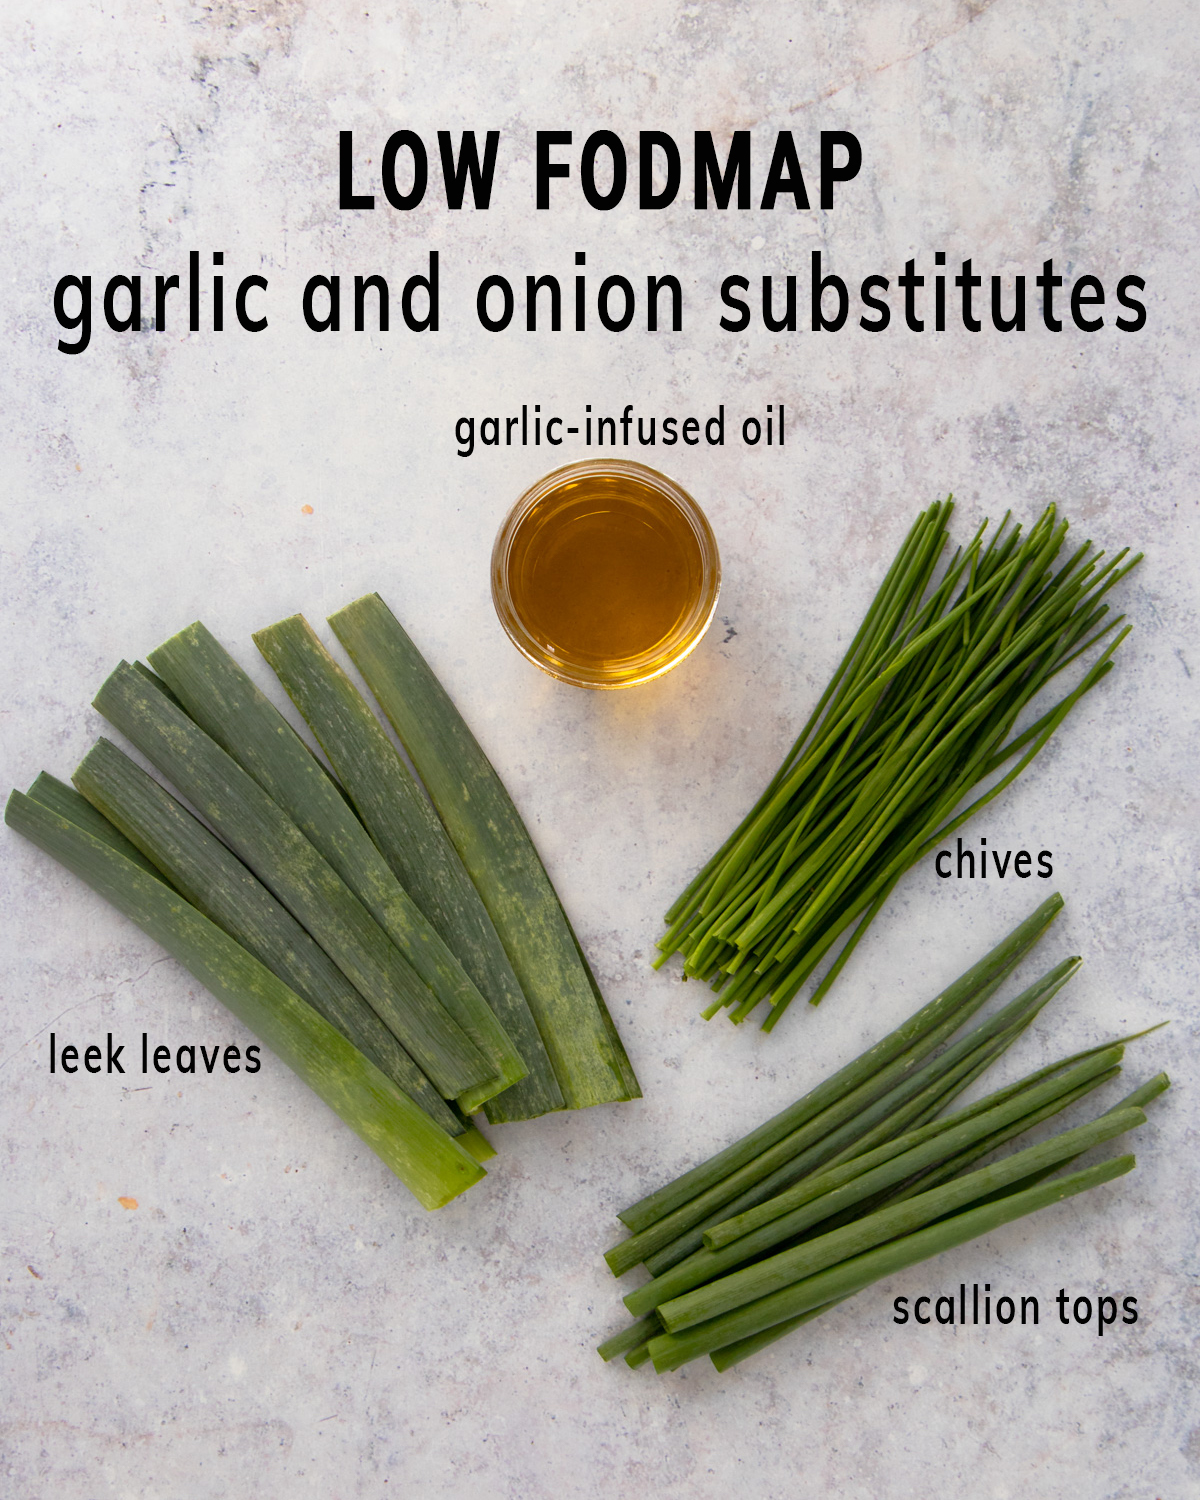 LOW FODMAP garlic and onion substitutes